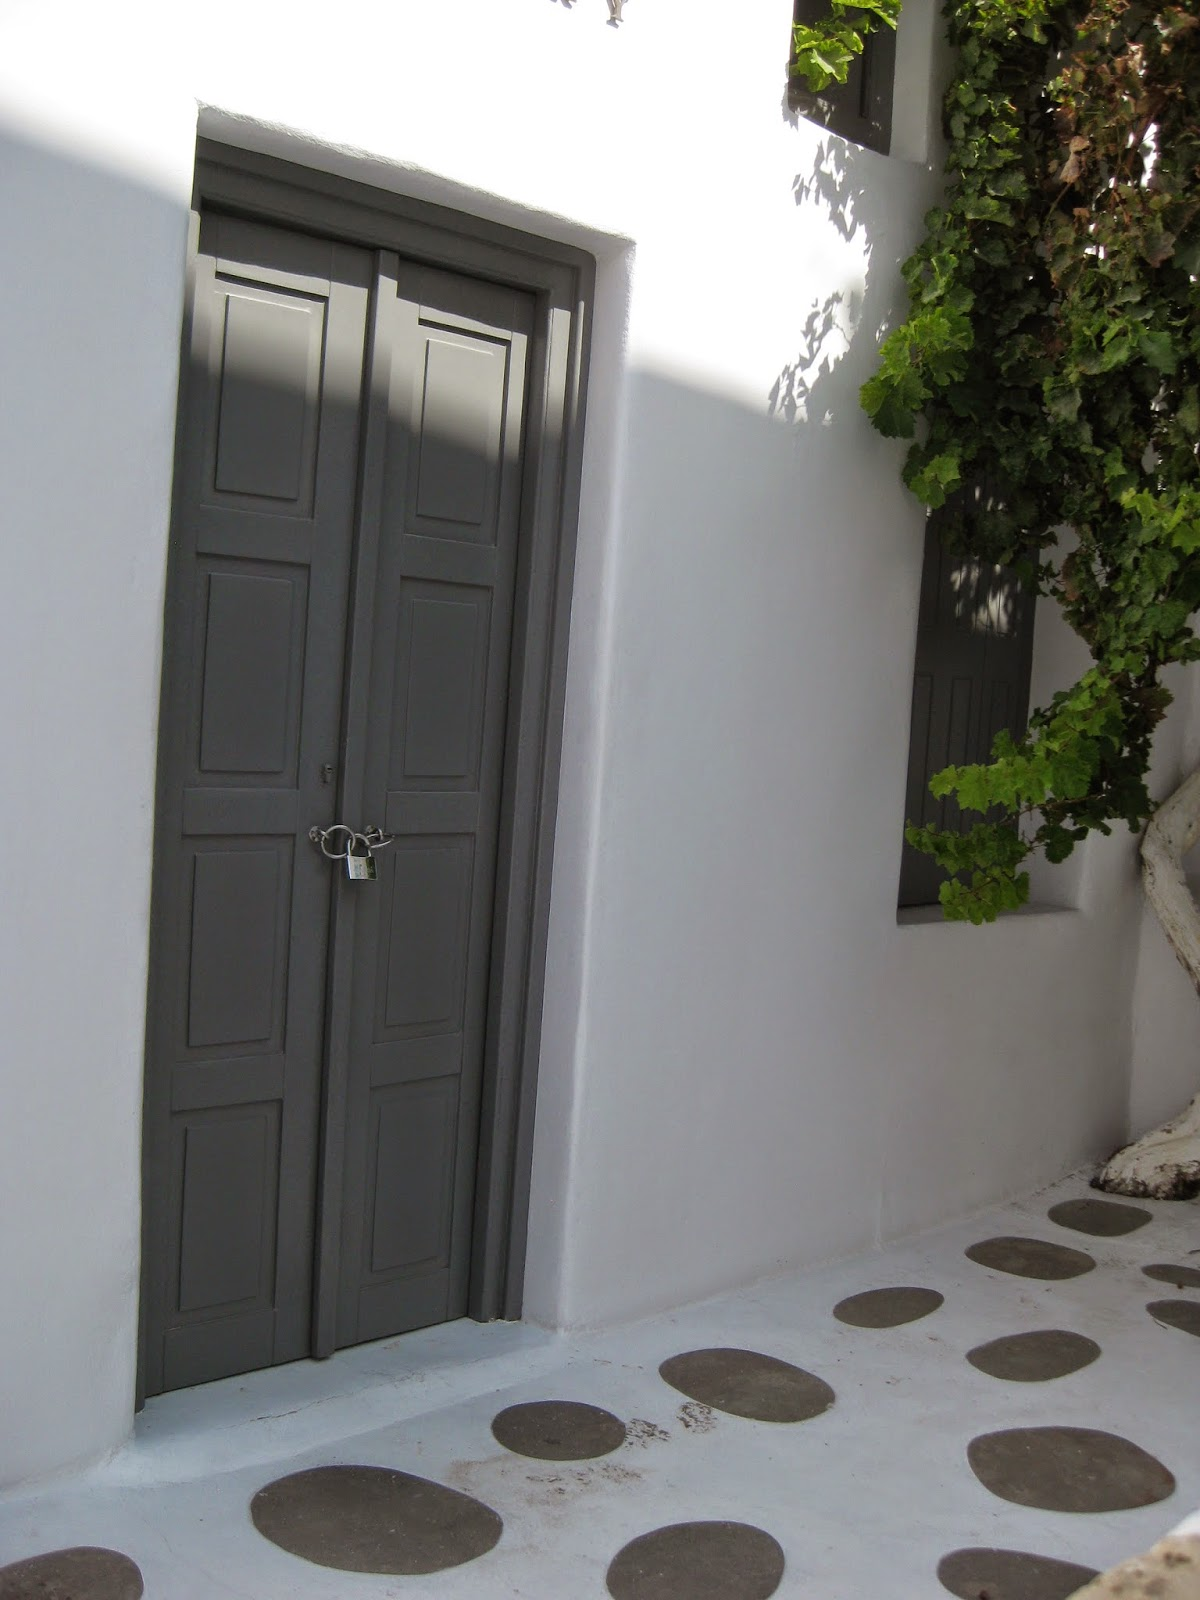 Mykonos - Beautifully maintained buildings